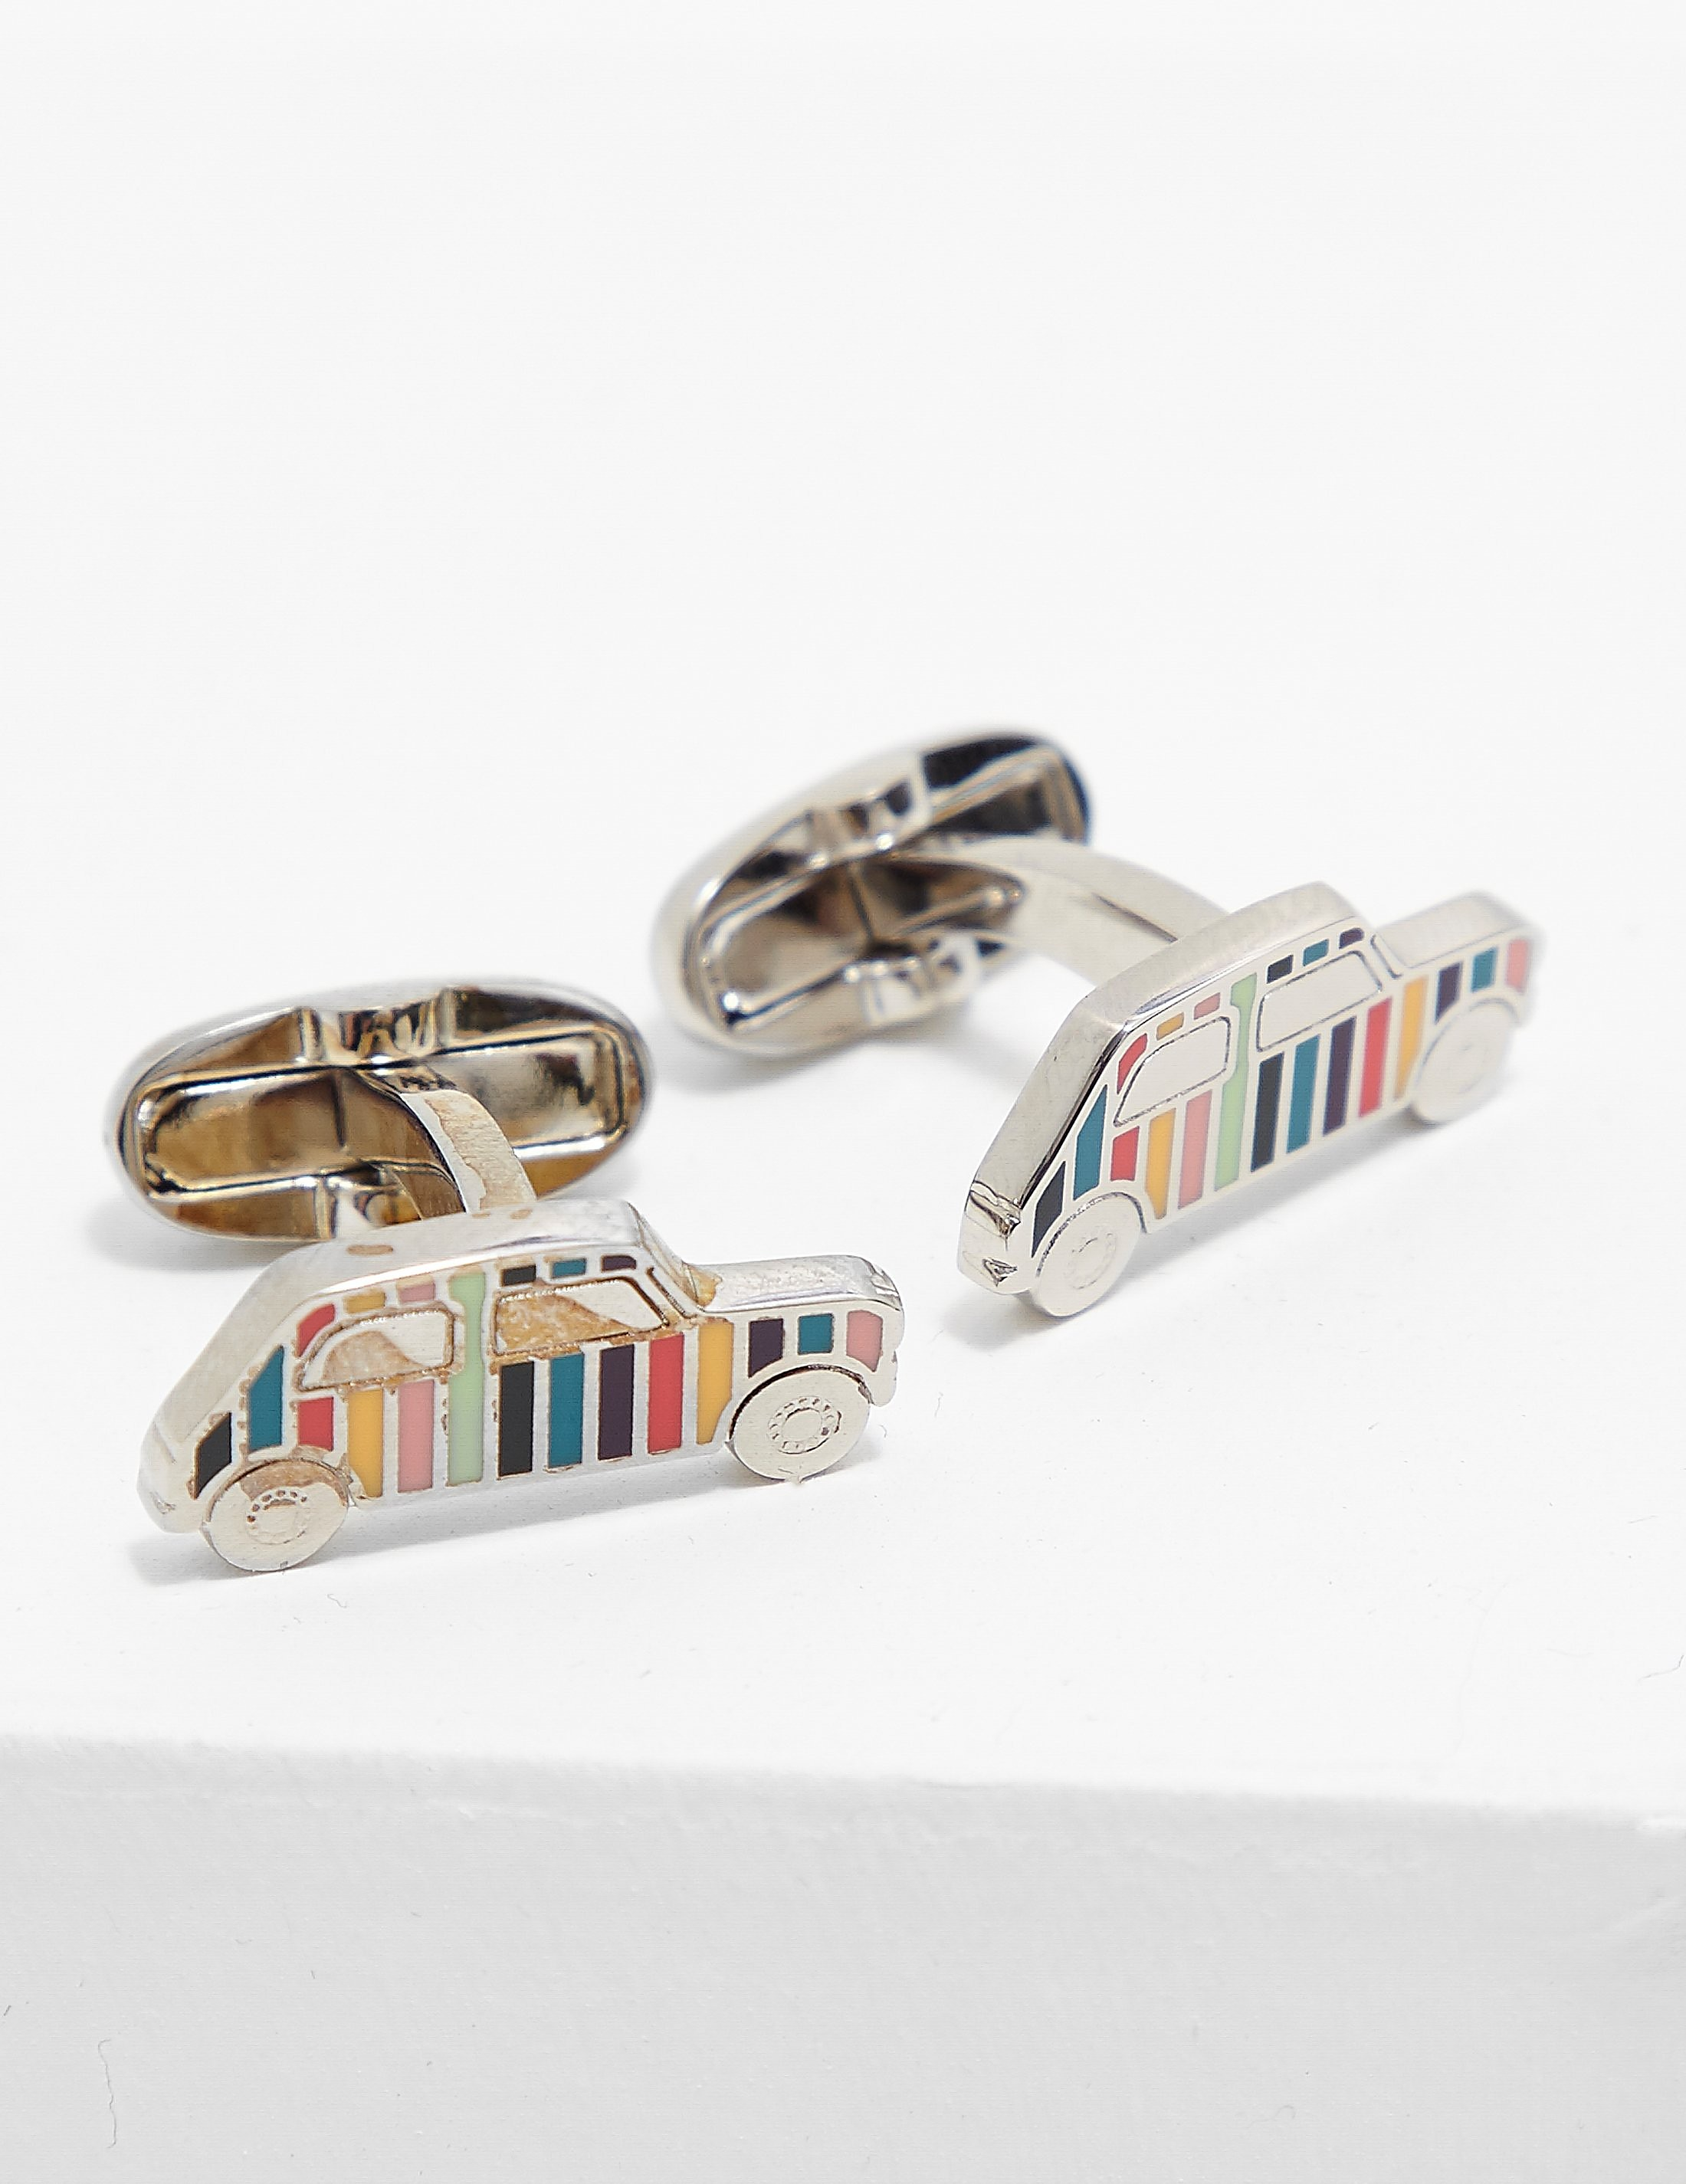 Paul Smith Mini Car Cufflinks